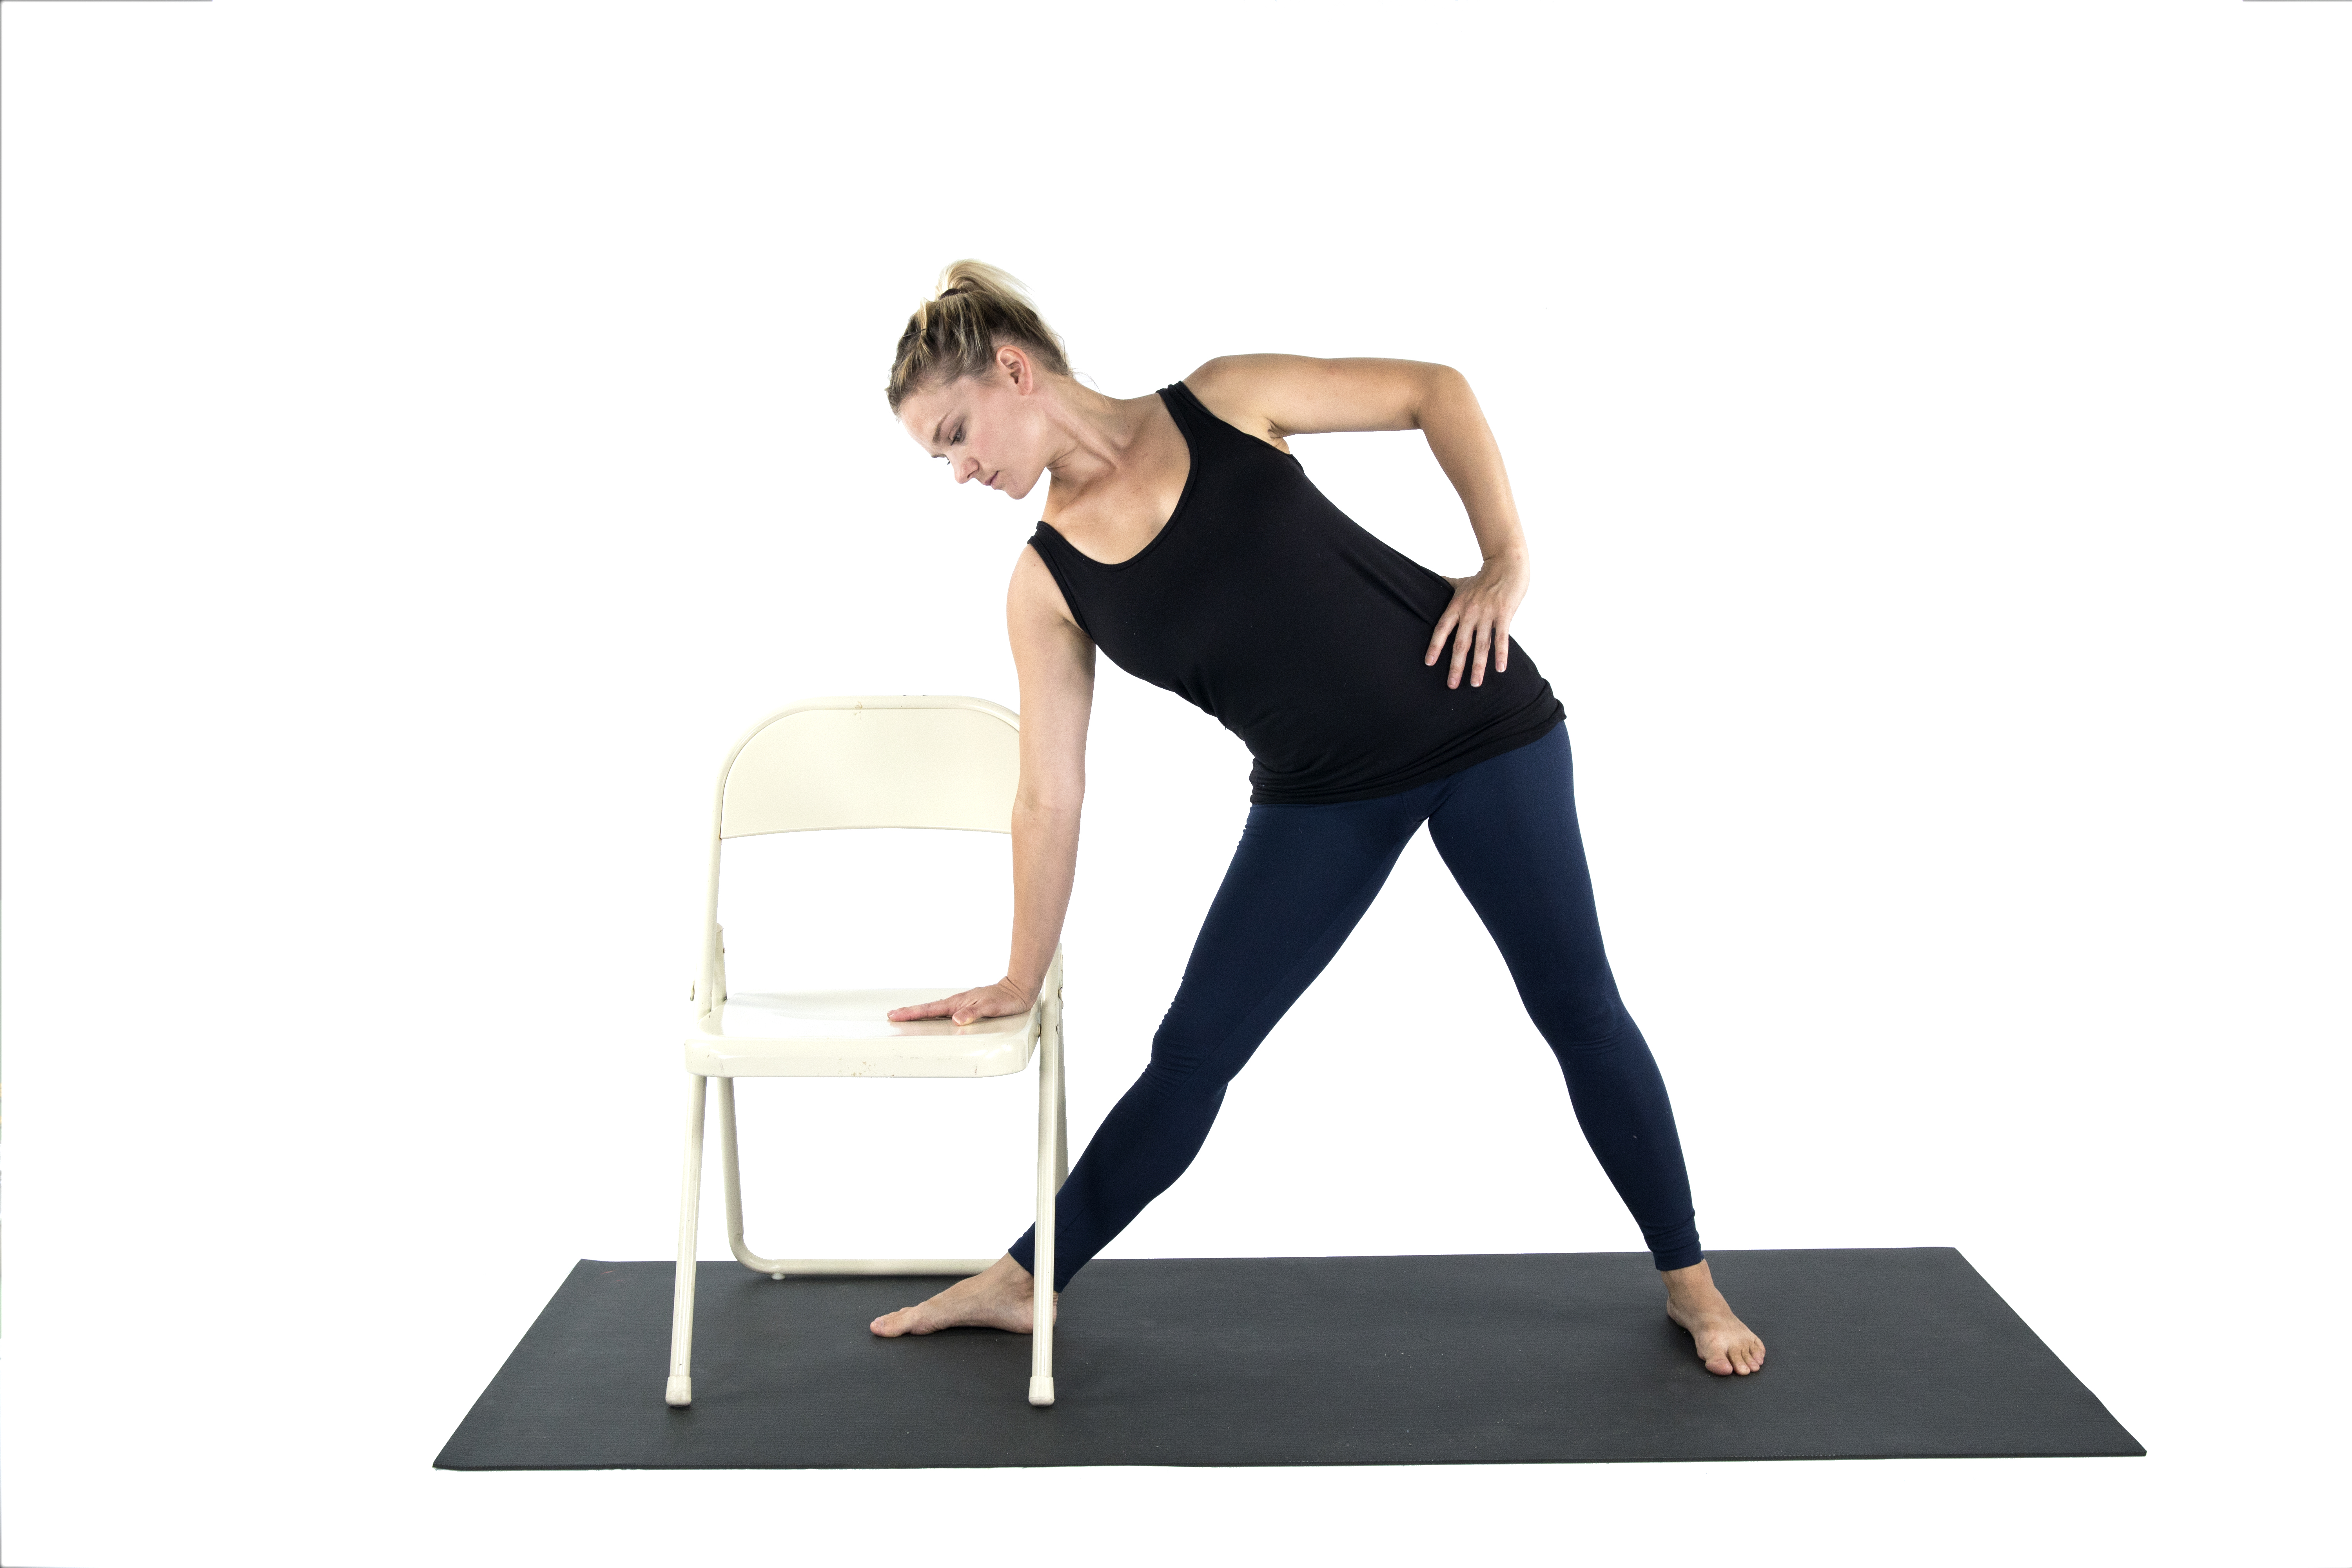 A woman doing a variation of Triangle Pose with the support of a chair in preparation for Warrior 2 yoga pose